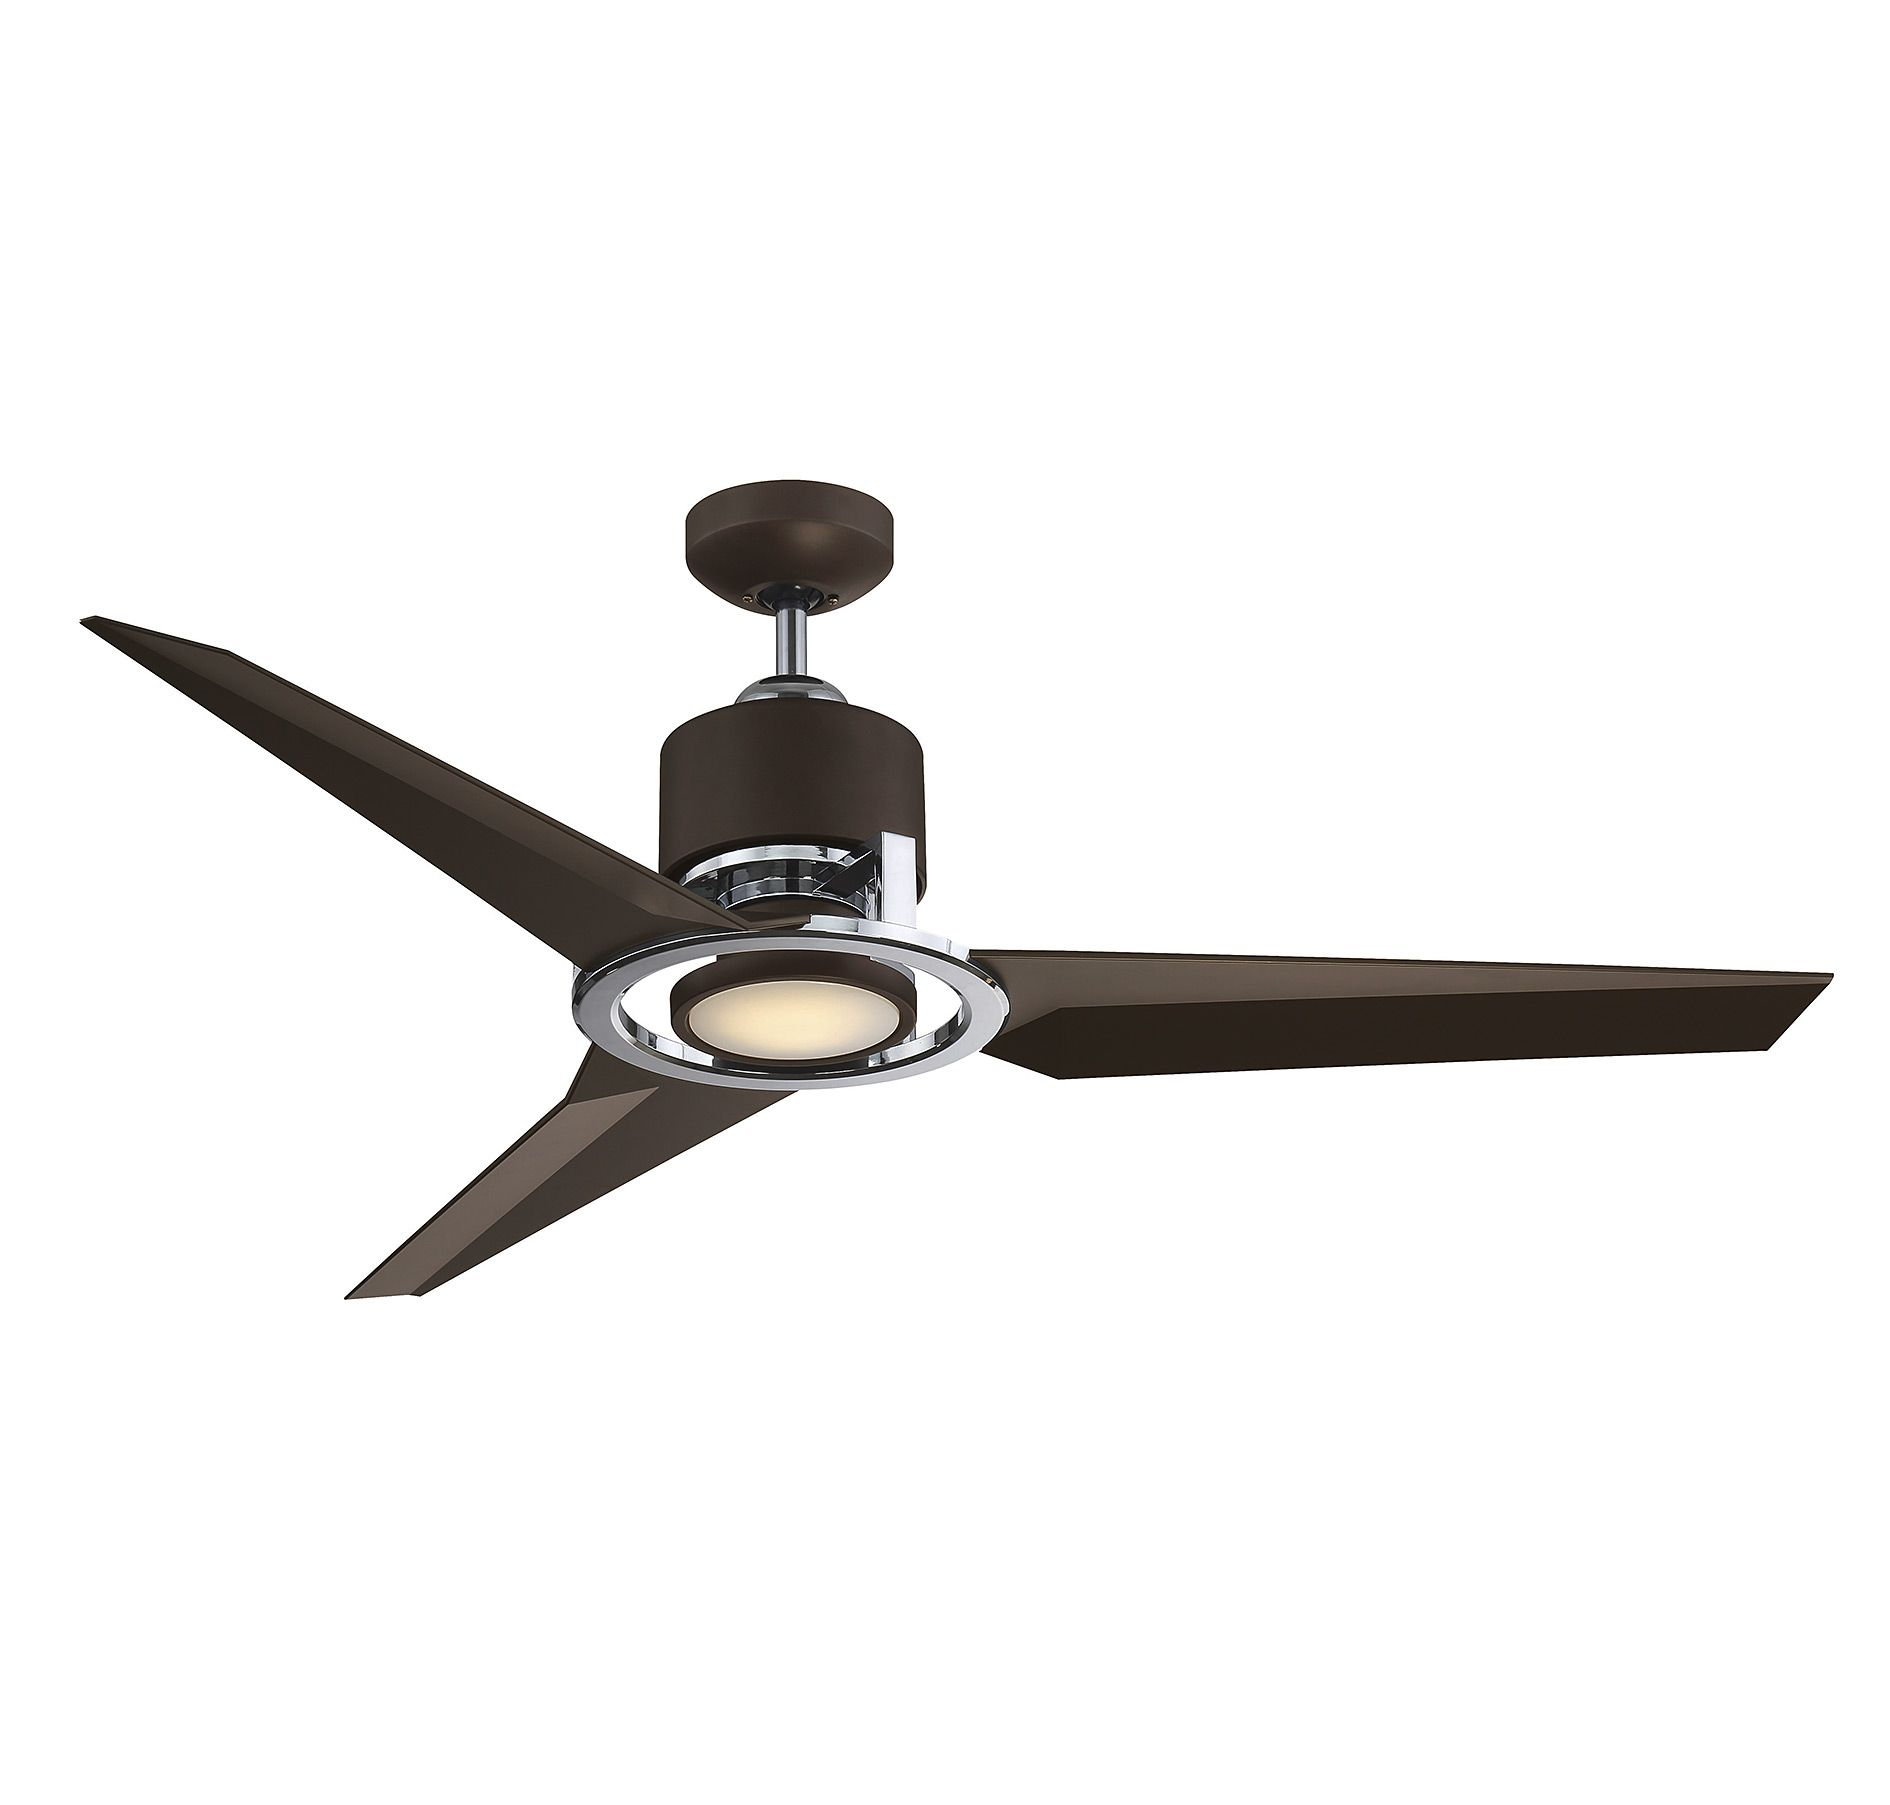 Starling 3 Blade Ceiling Fan fans Pinterest